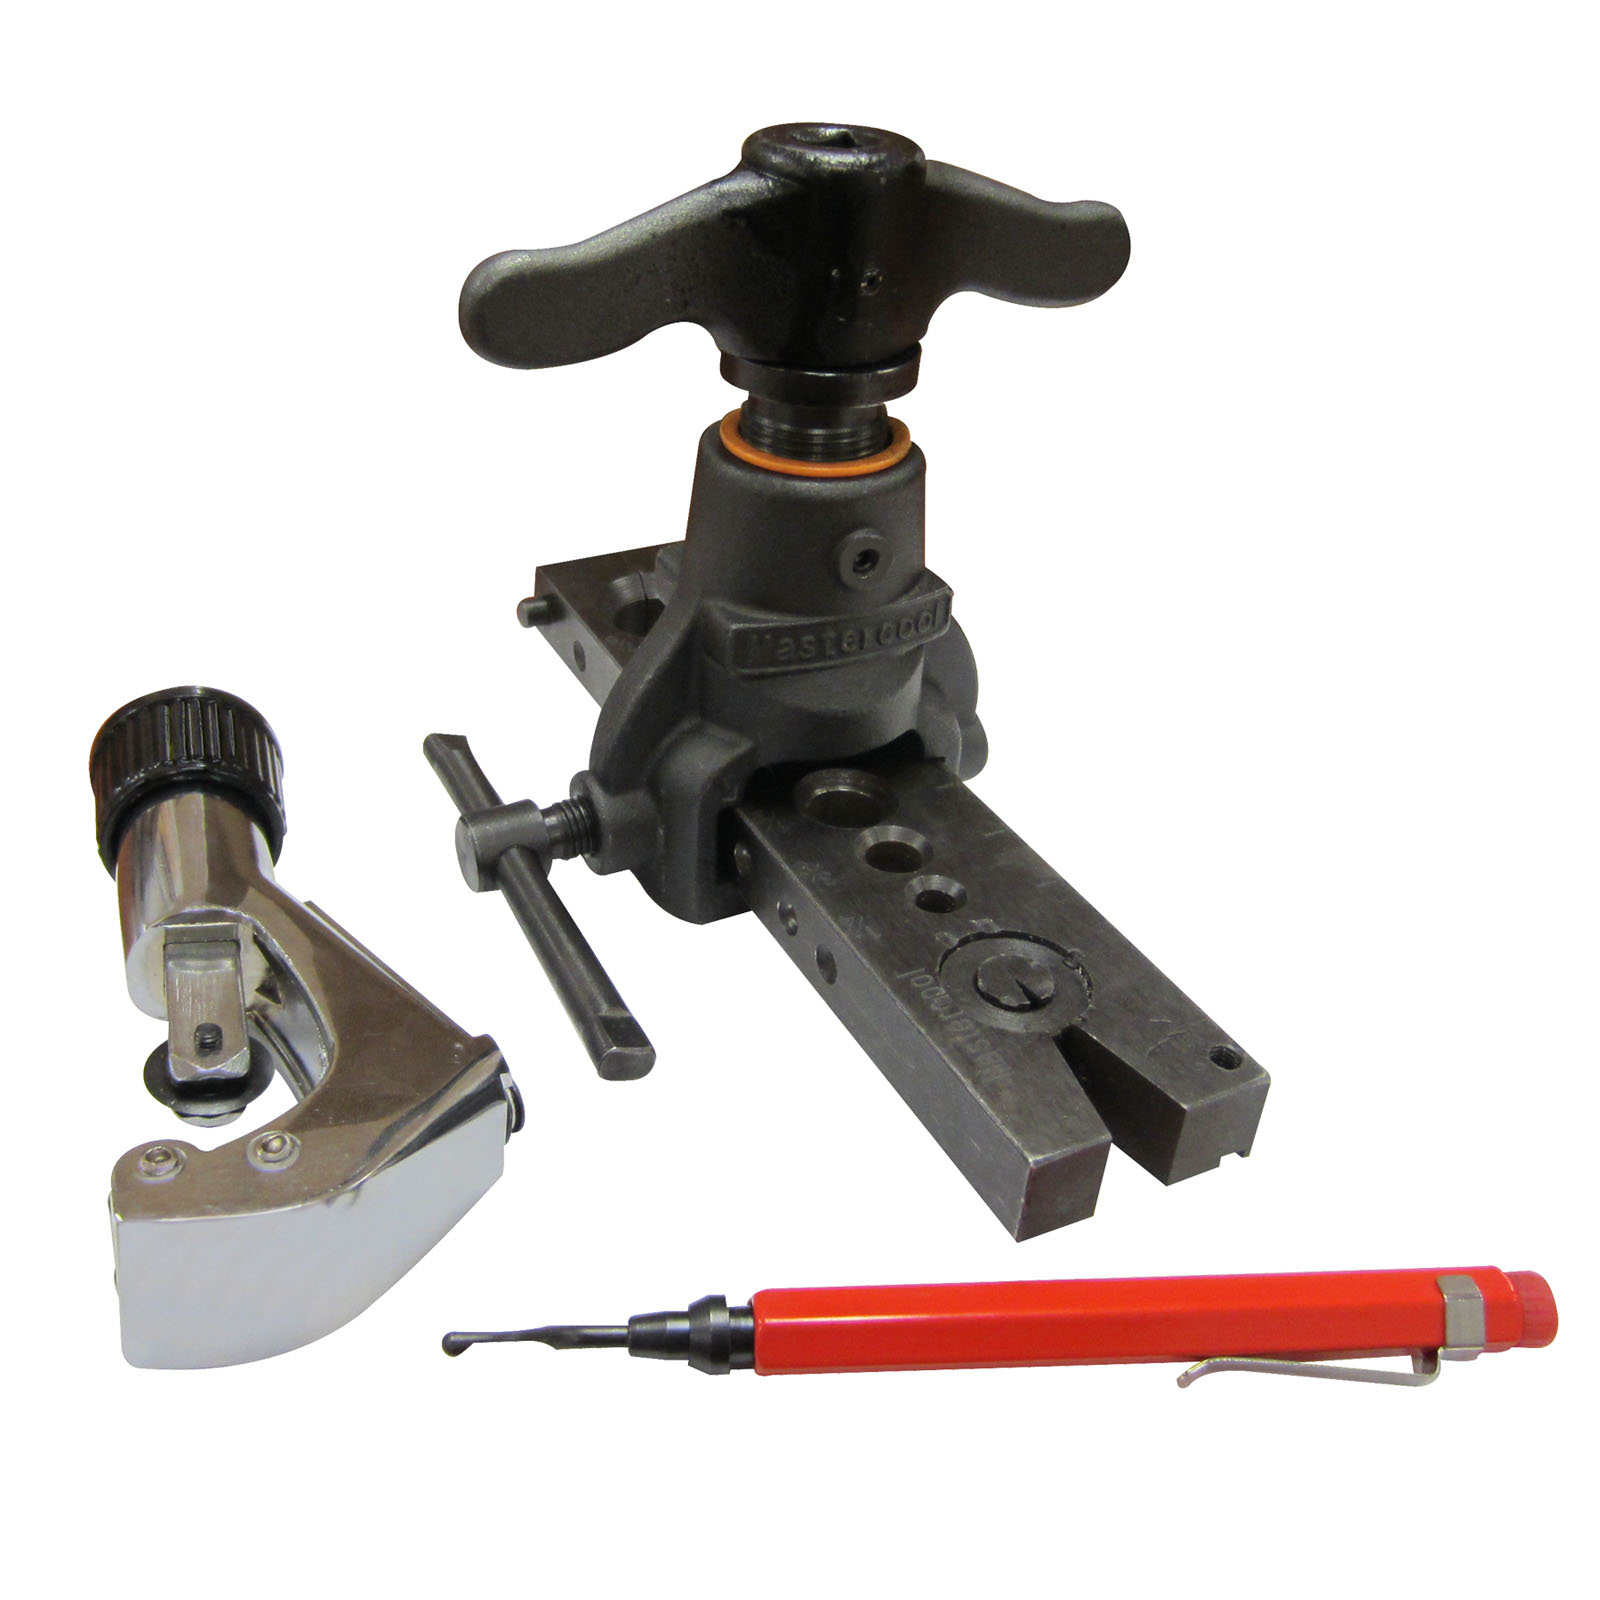 mastercool inc   manufacturer of air conditioning  refrigeration  service tools and equipment